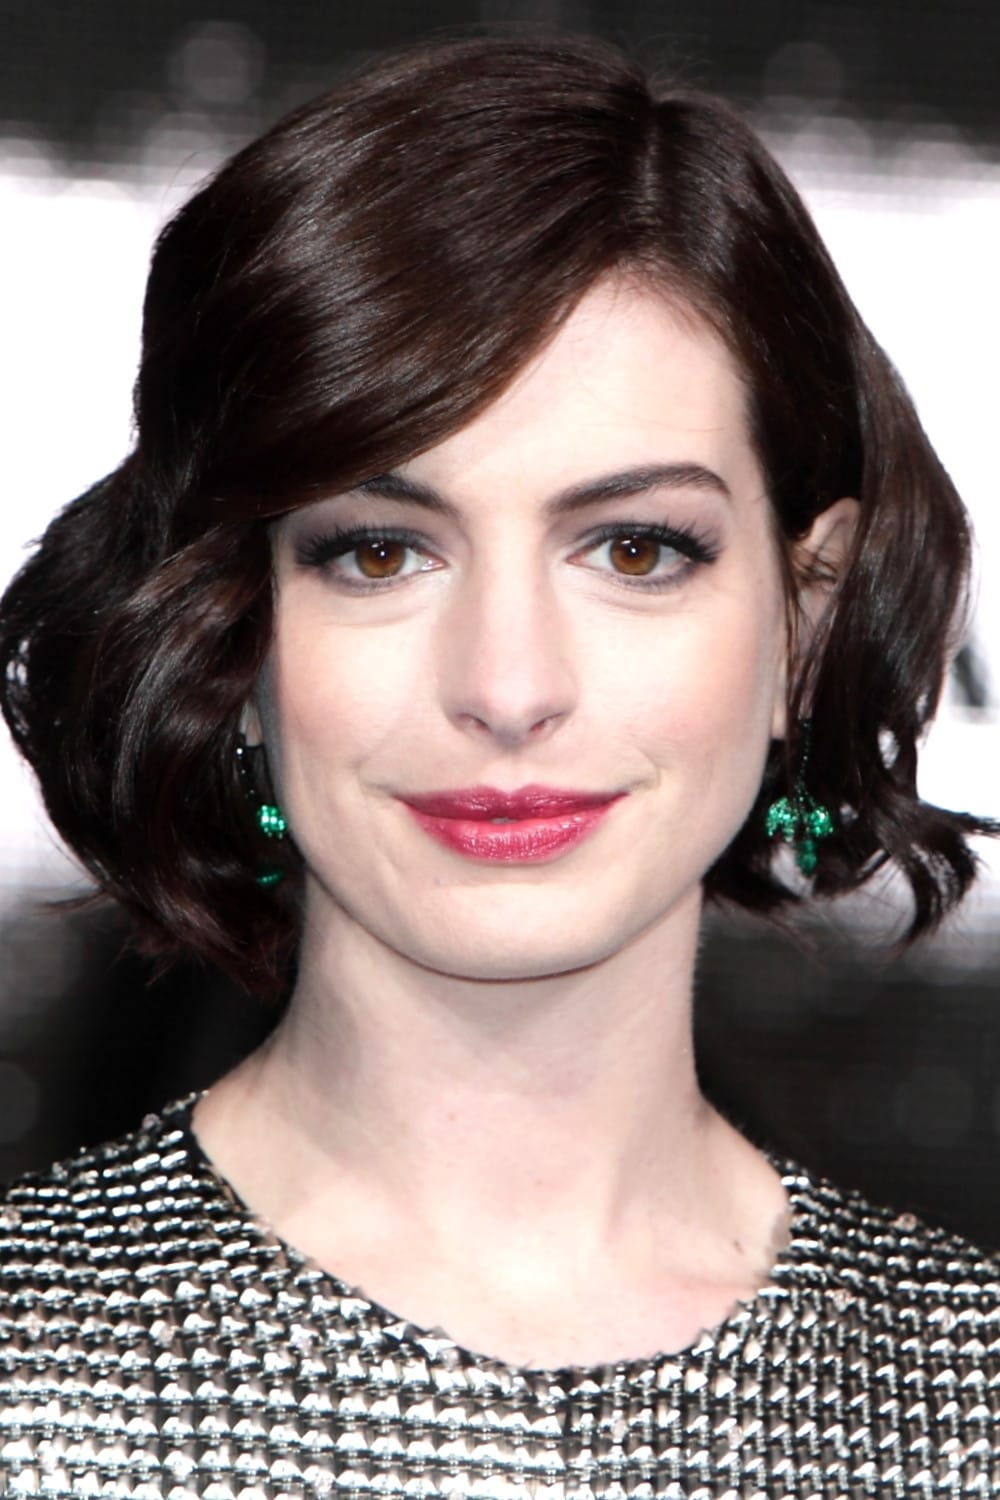 Anne Hathaway born November 12, 1982 (age 35) nude (53 pictures) Sexy, YouTube, lingerie